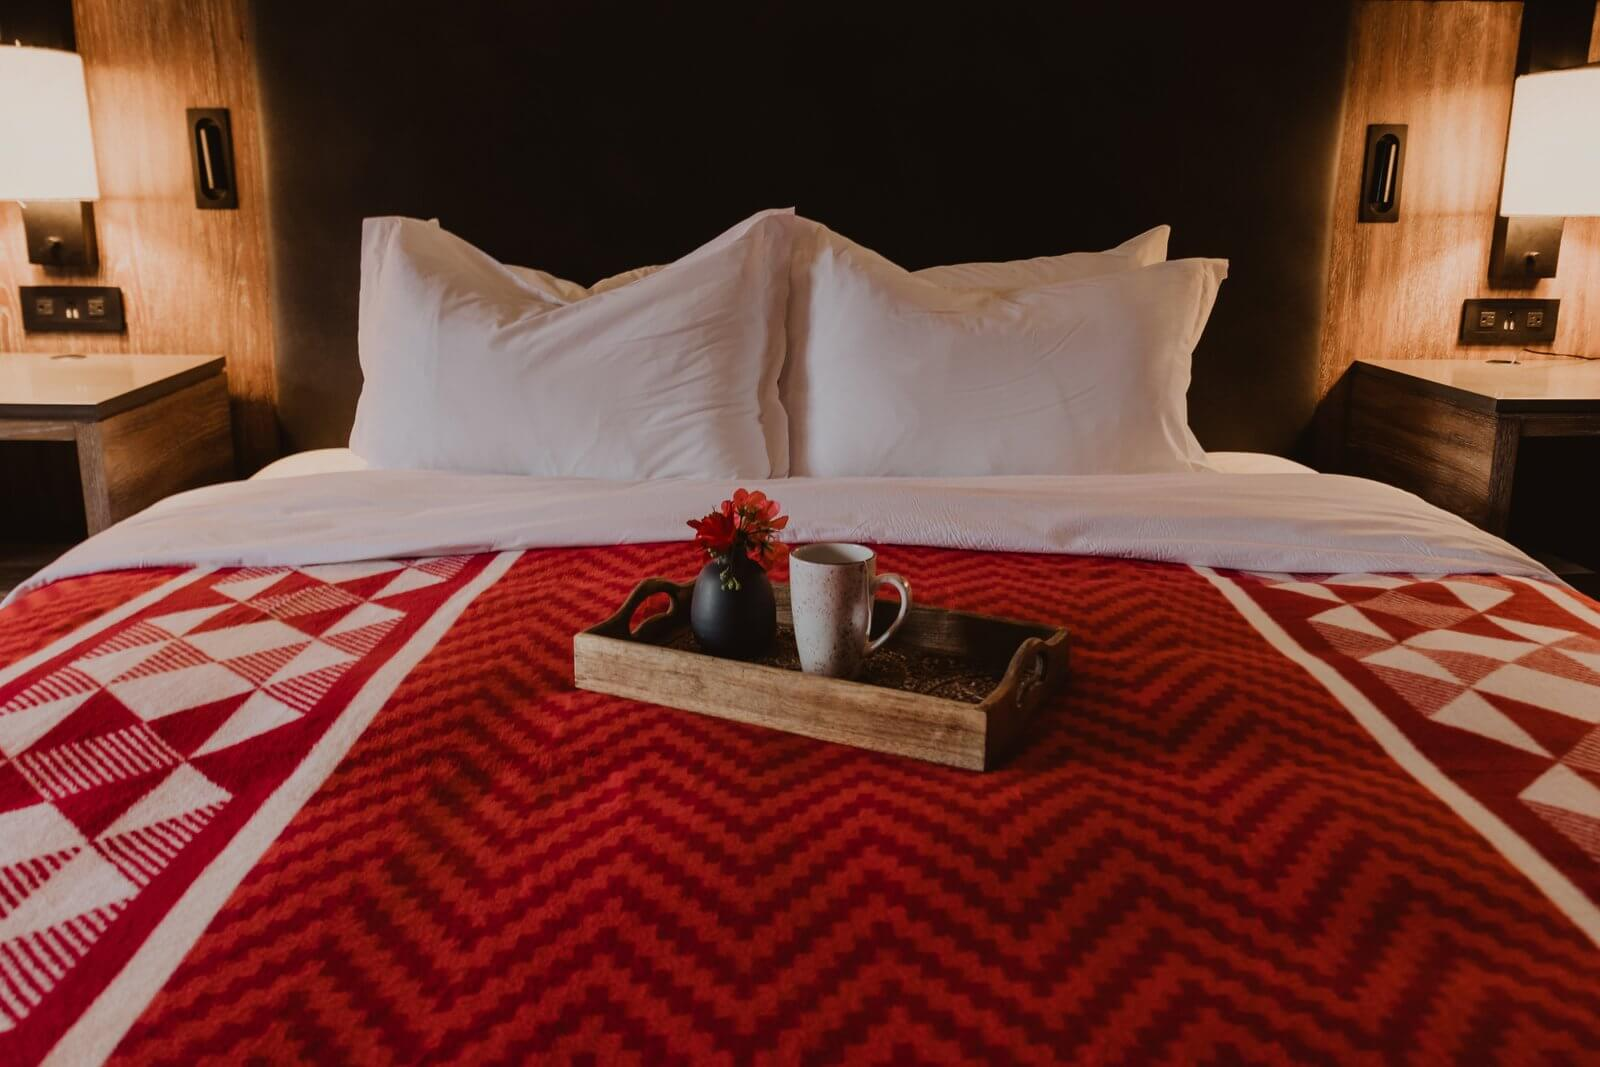 Native American Indian blankets on bed